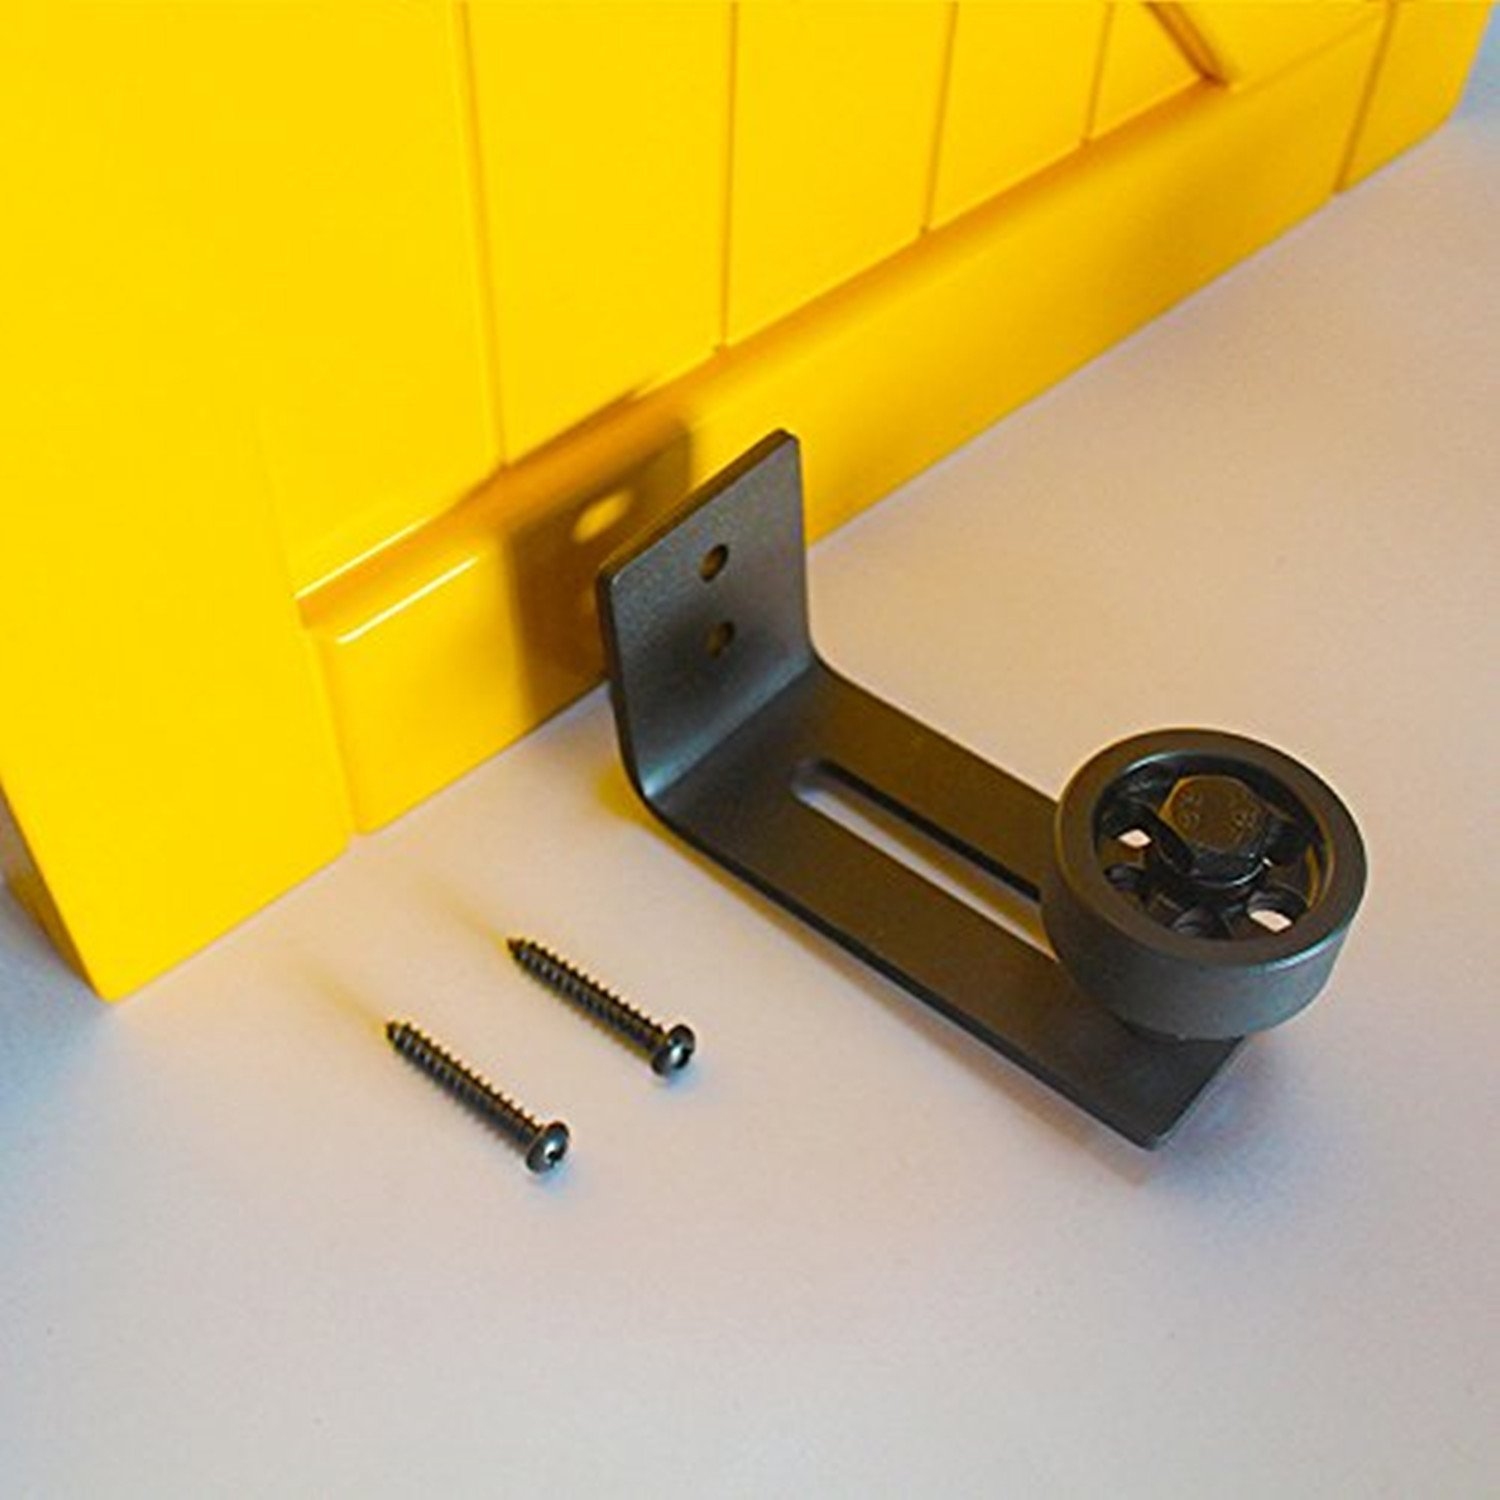 VANCLEEF Adjustable Single Wheel Floor Guide, Used for Sliding Barn Door, Wall Mounted, Made of Black Carbon Steel, Ensures Quiet and Smooth Sliding. by Vancleef Hardware (Image #2)